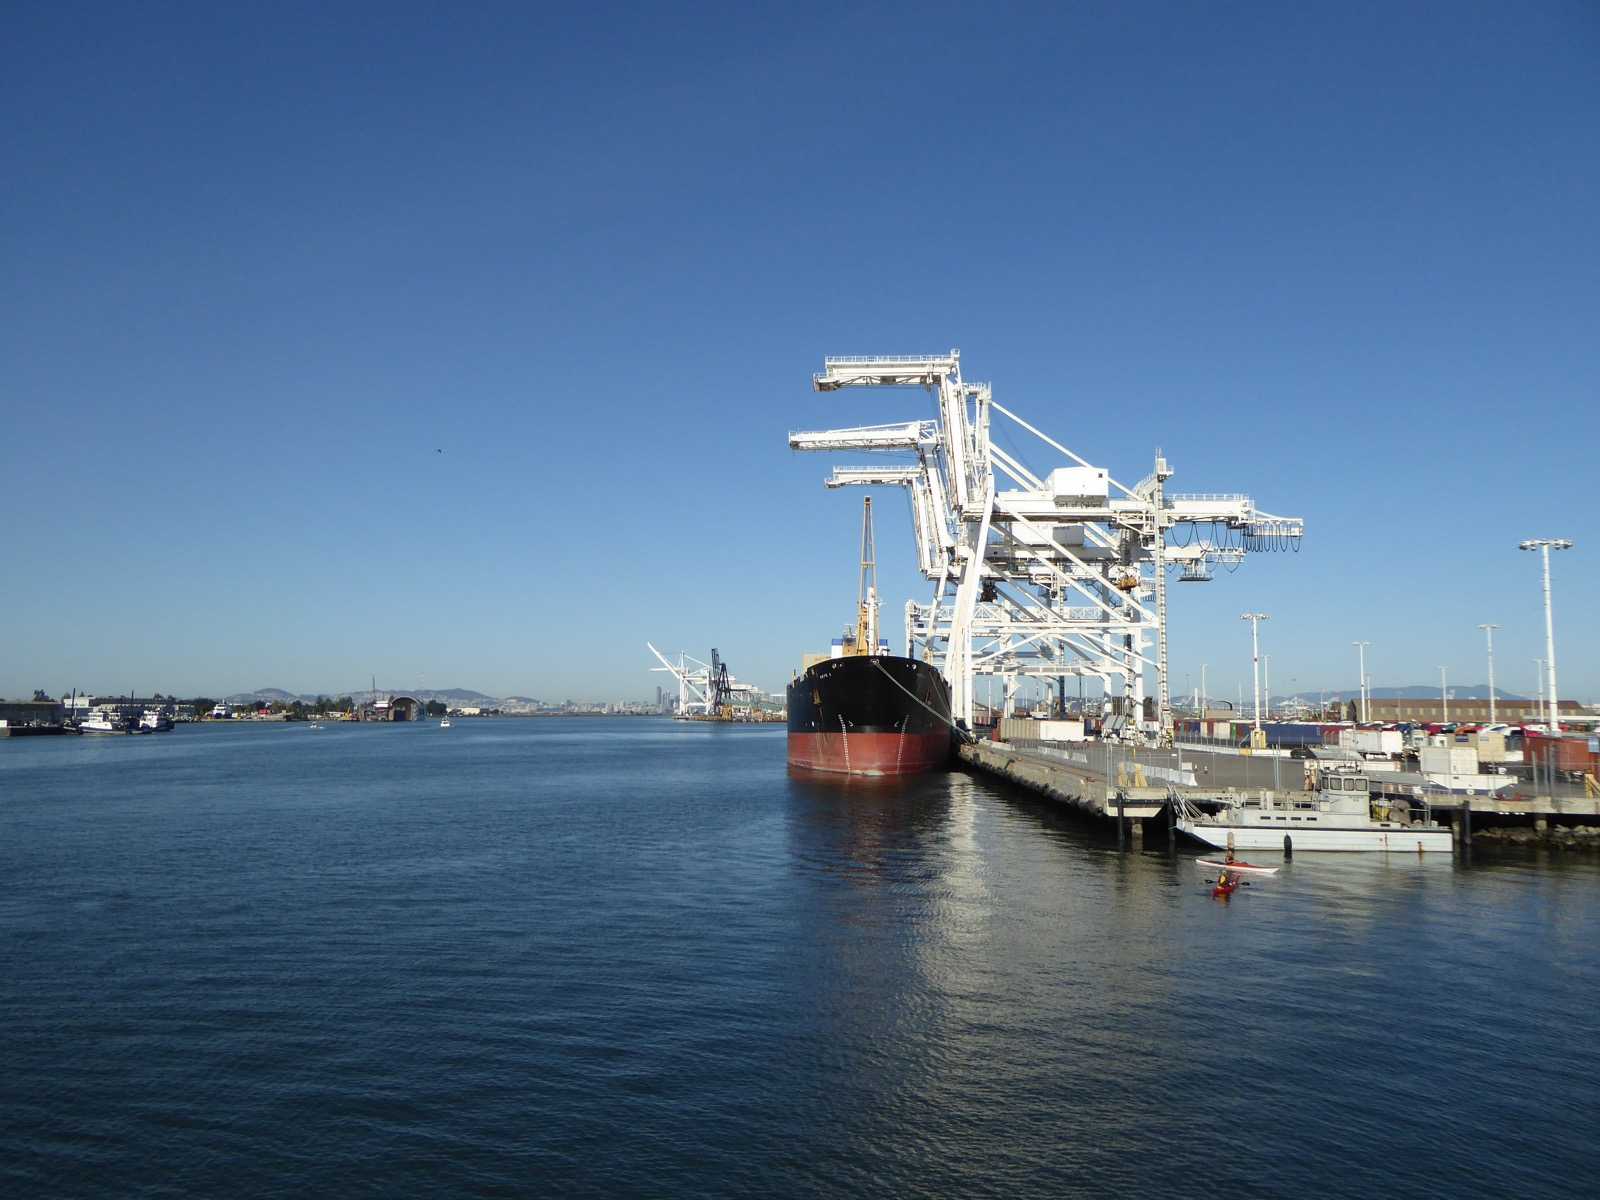 Port of Oakland from Oakland San Francisco ferry